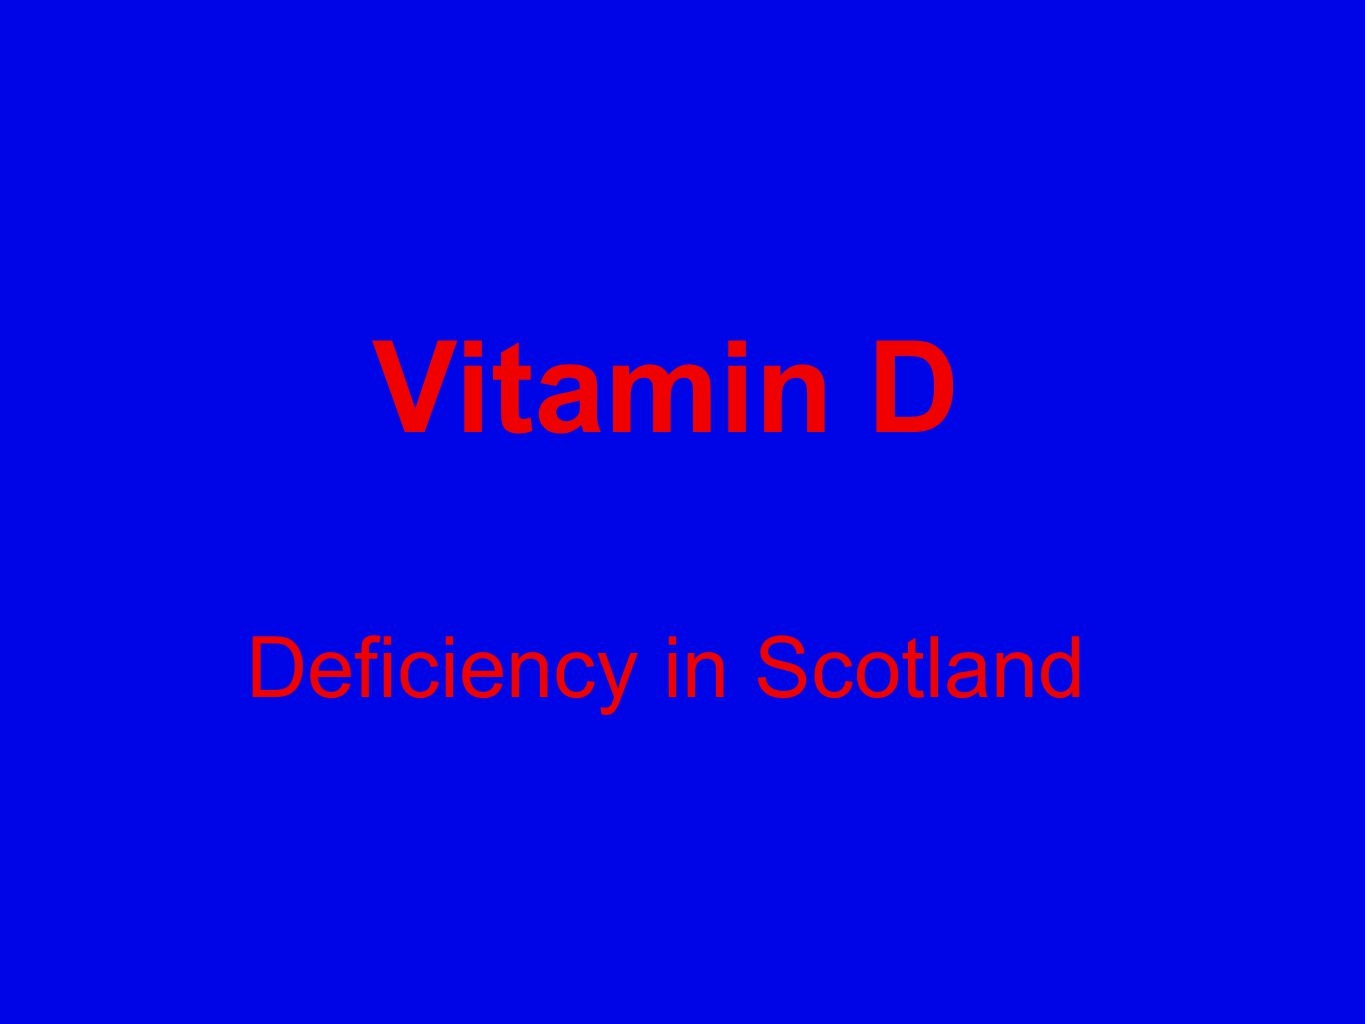 Vitamin D Deficiency in Scotland